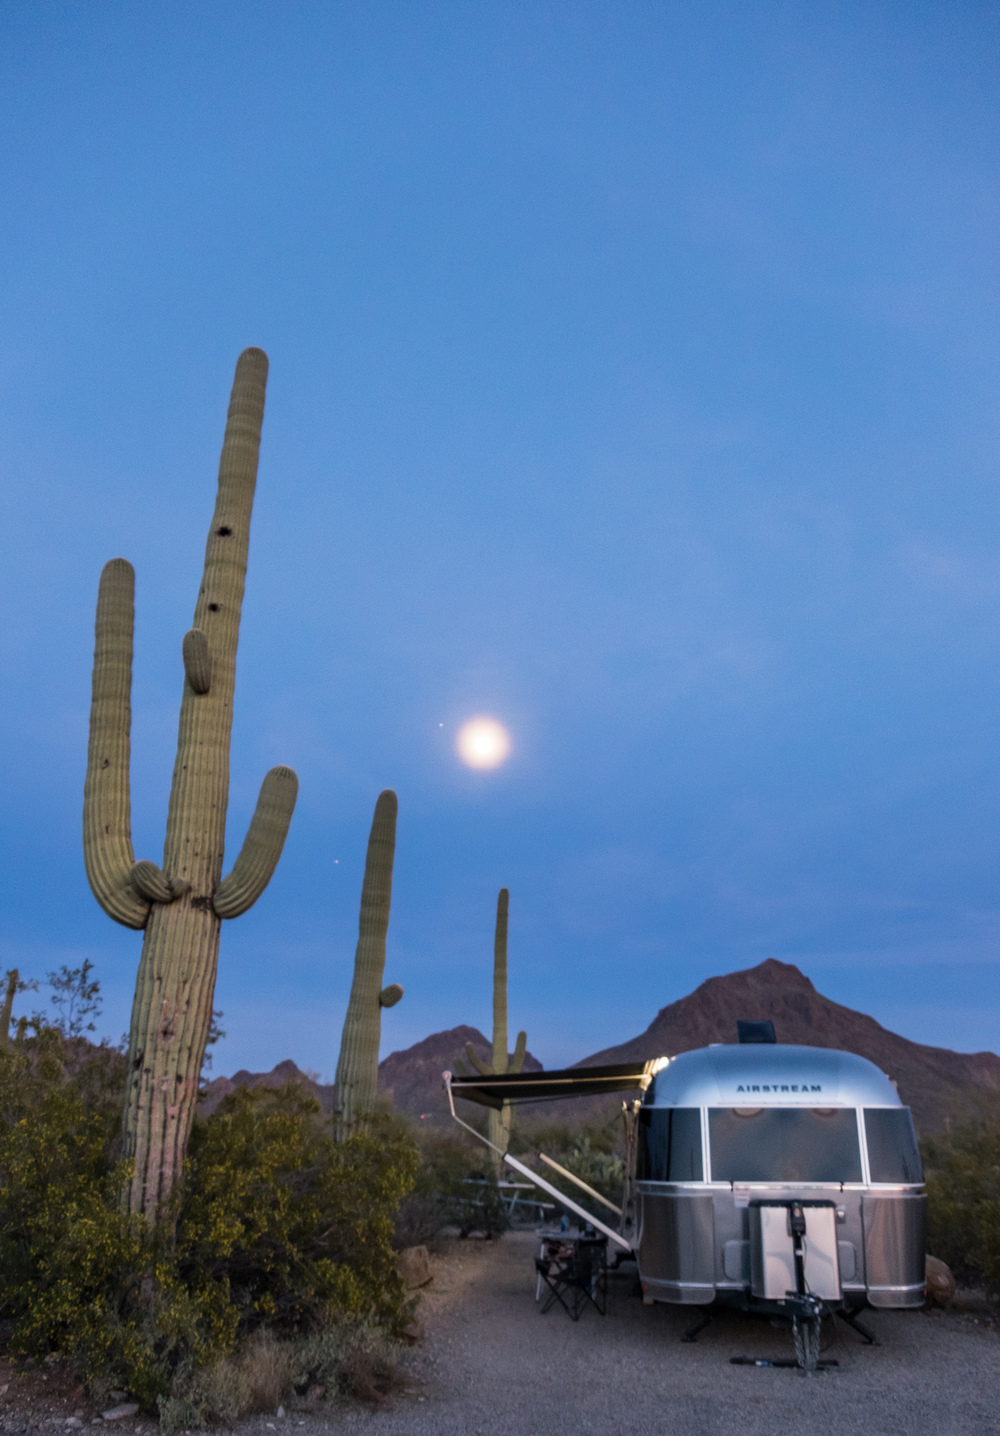 Moon glow above Wally the Airstream at Saguaro National Park in Arizona.